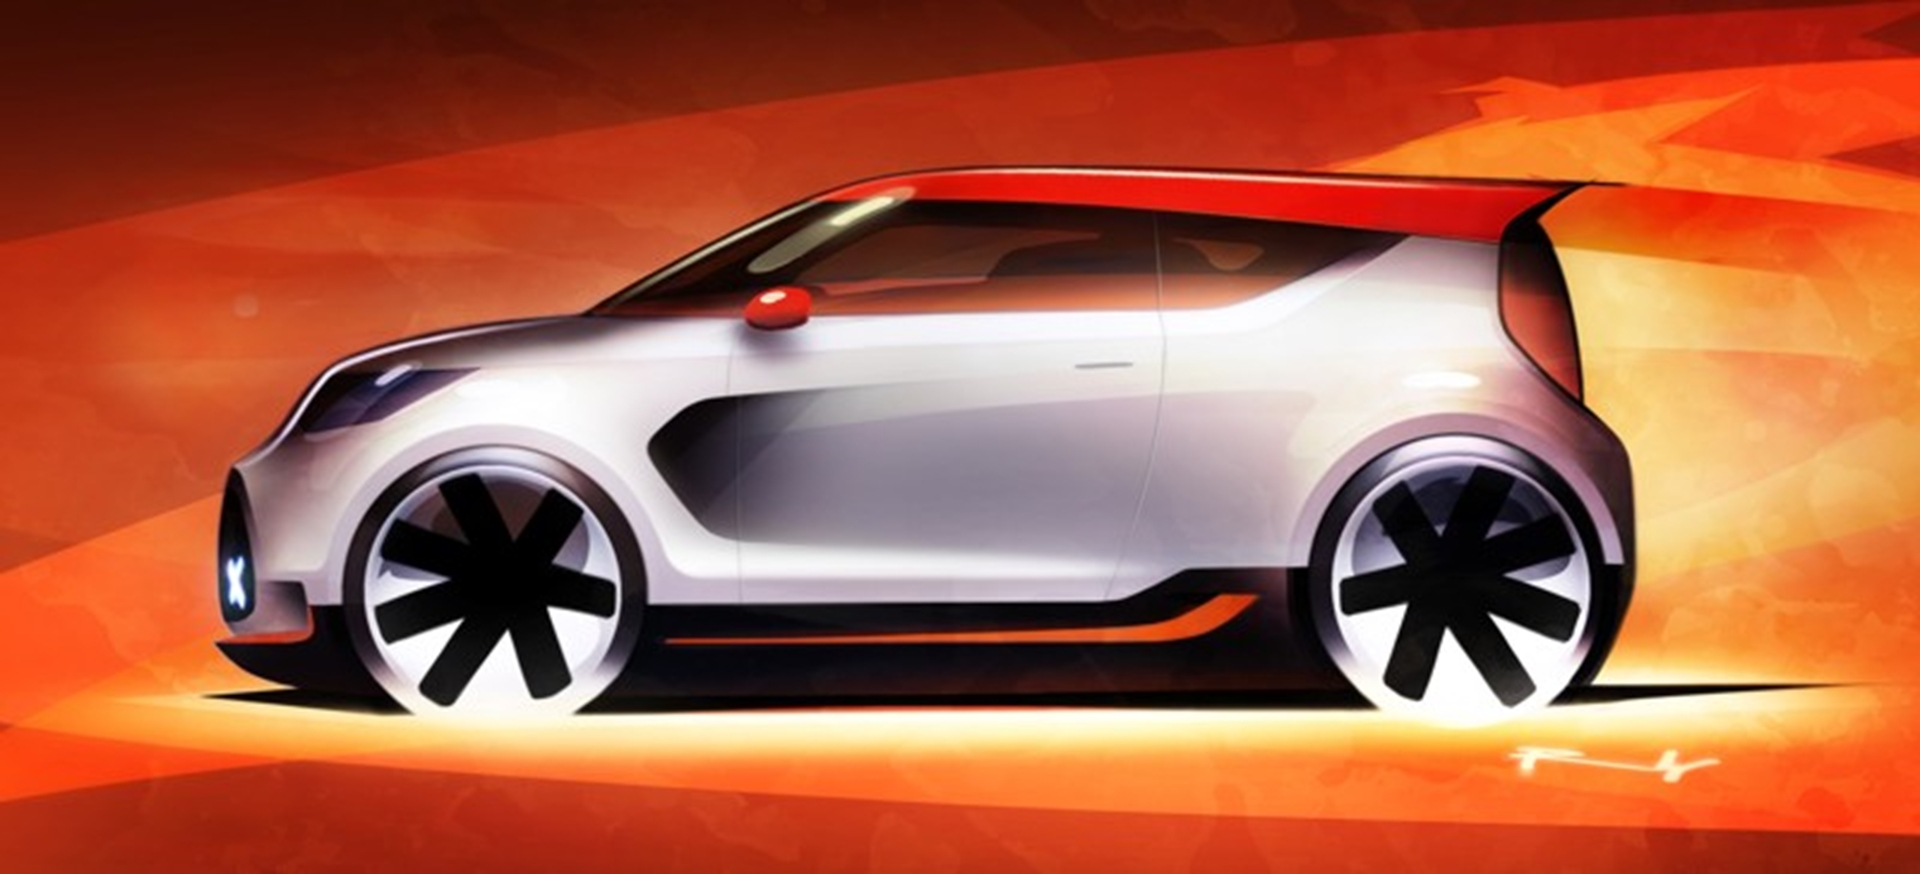 The Ultimate Soul - Kia's Track'ster concept is revealed